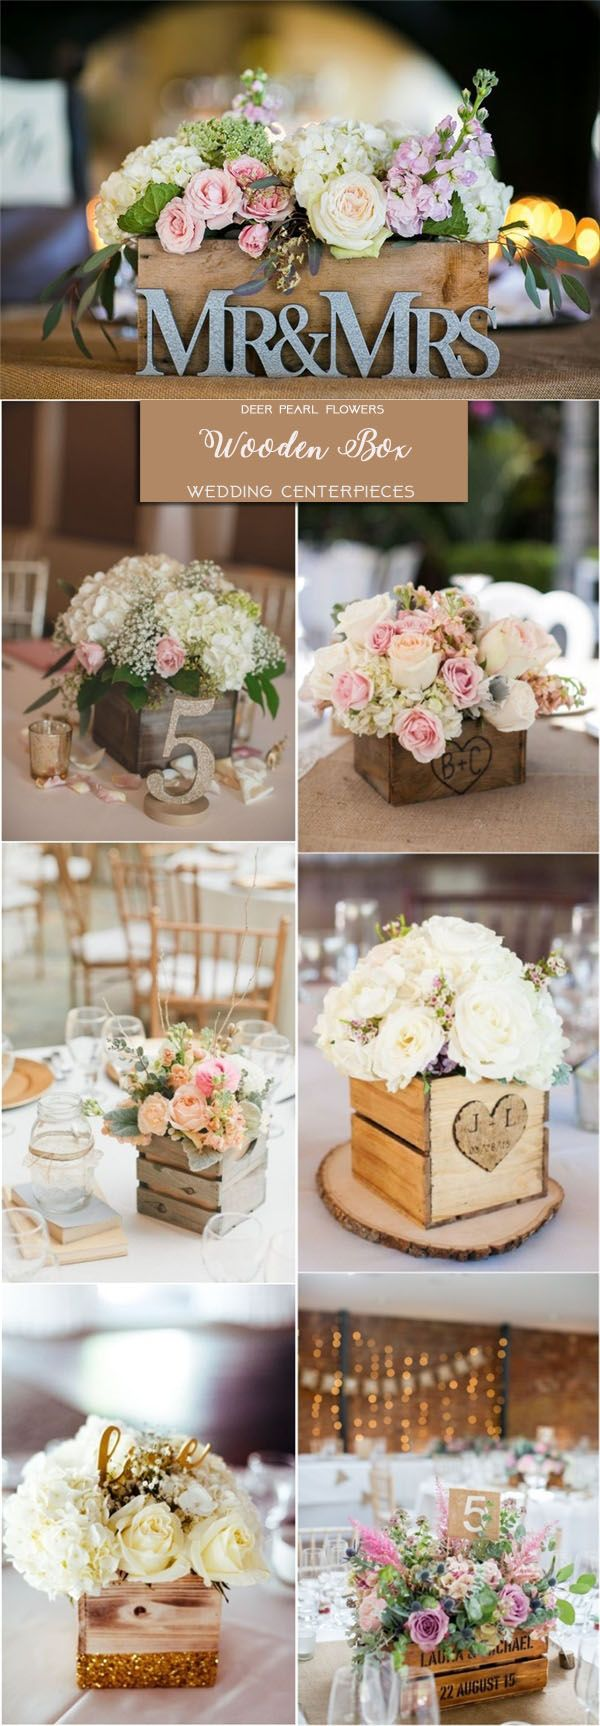 60 insanely wedding centerpiece ideas youll love wedding rustic country wooden box wedding centerpieces httpdeerpearlflowers junglespirit Image collections